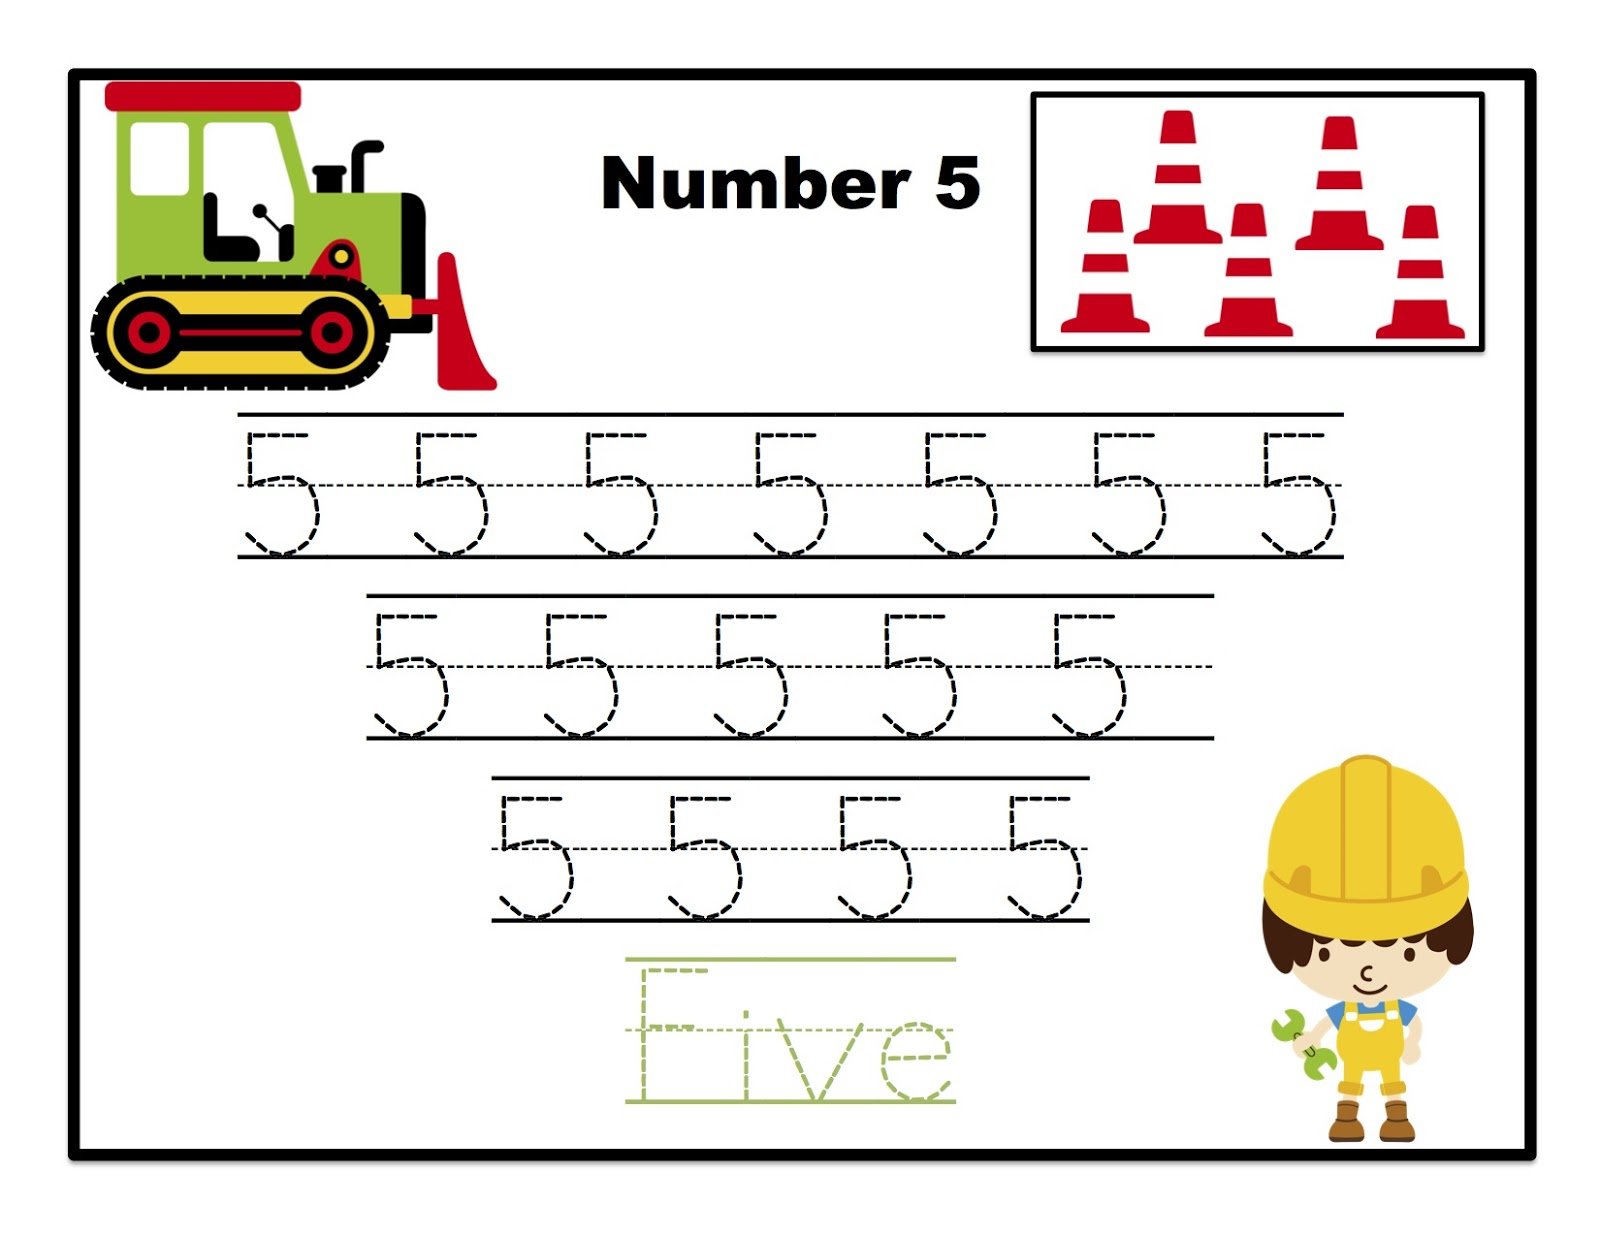 Number 4 Tracing Page http://owensfamily-gwyn.blogspot.com/2013/02/construction-number-tracing-printable.html